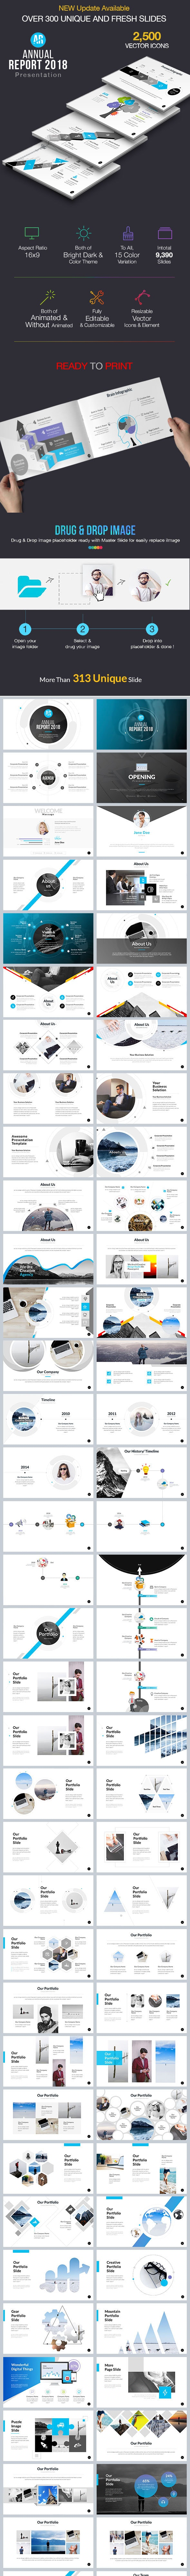 Annual Report Presentation PowerPoint Template - PowerPoint Templates Presentation Templates